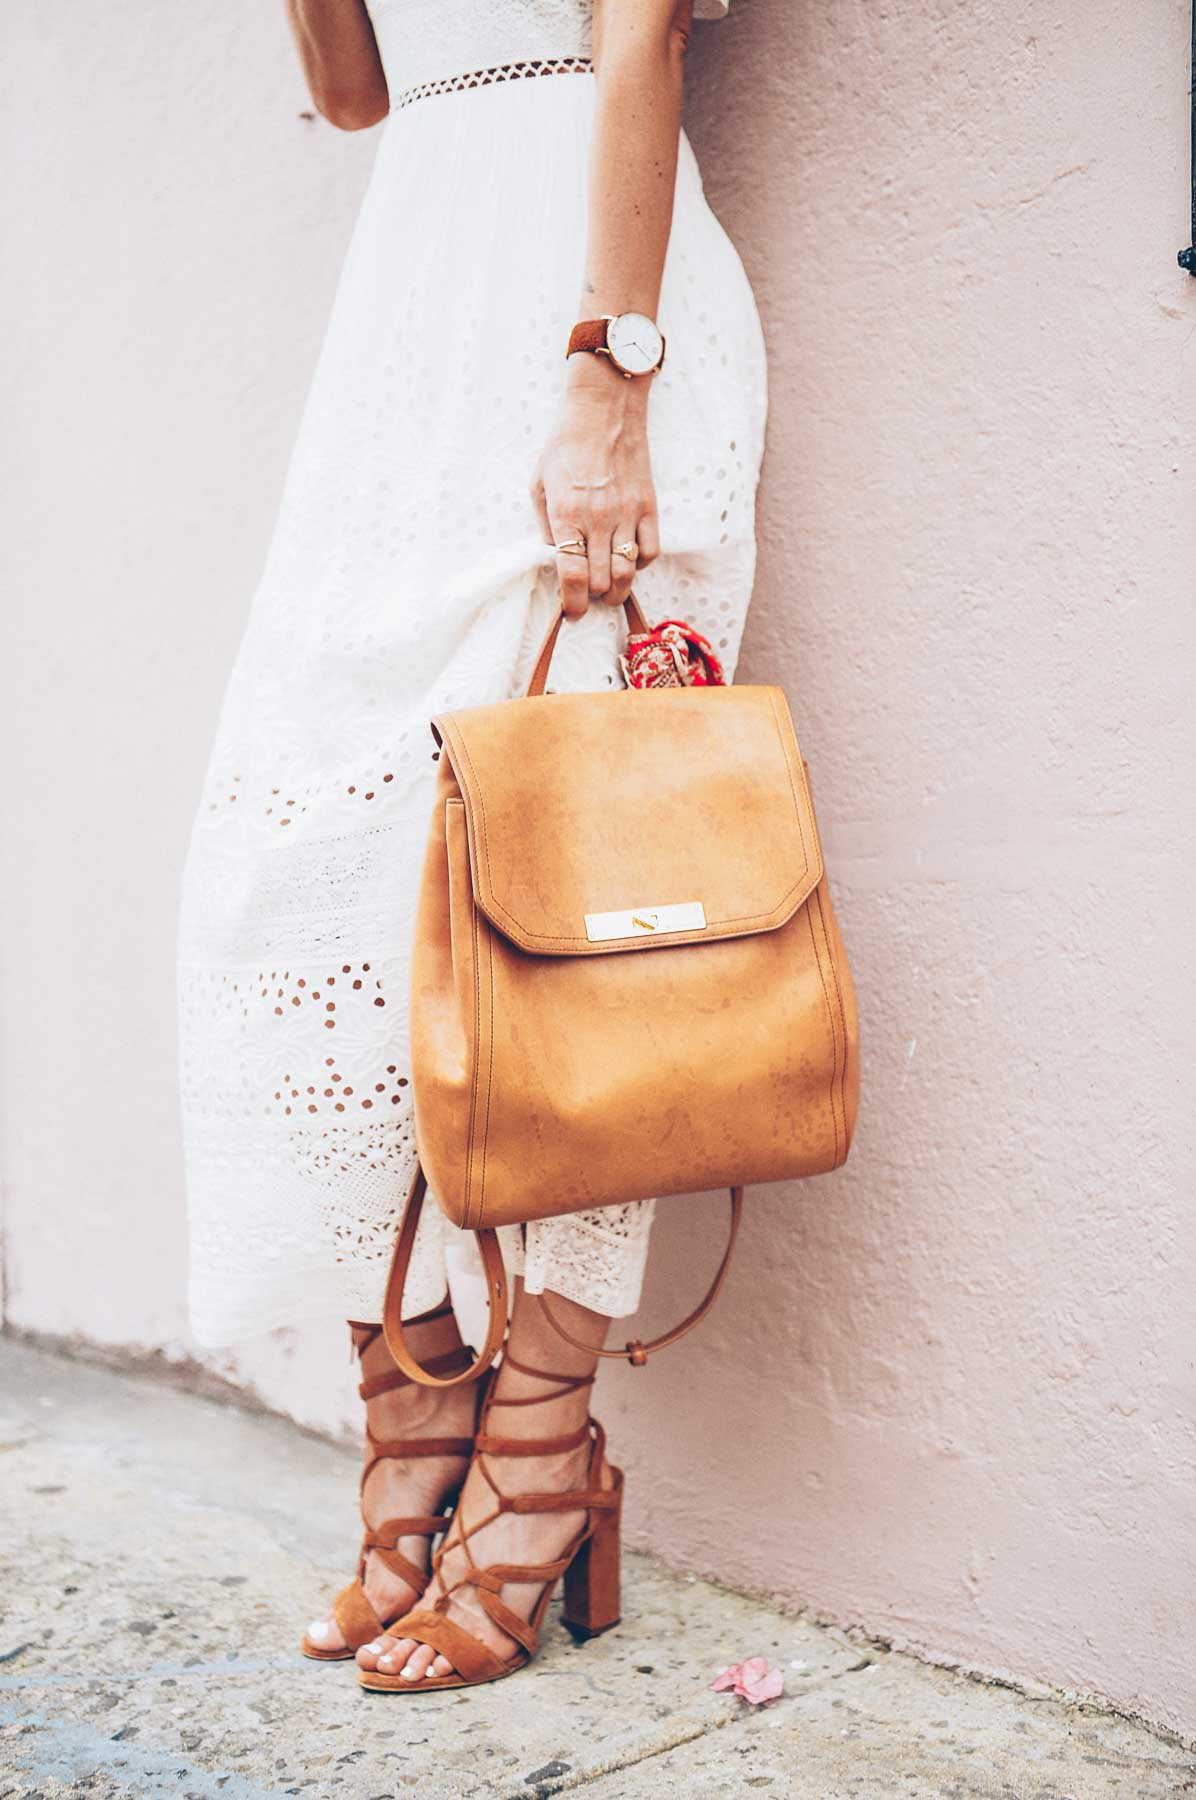 Jess Kirby wearing the Brahmin Southcoast backpack with lace up heels and a white dress